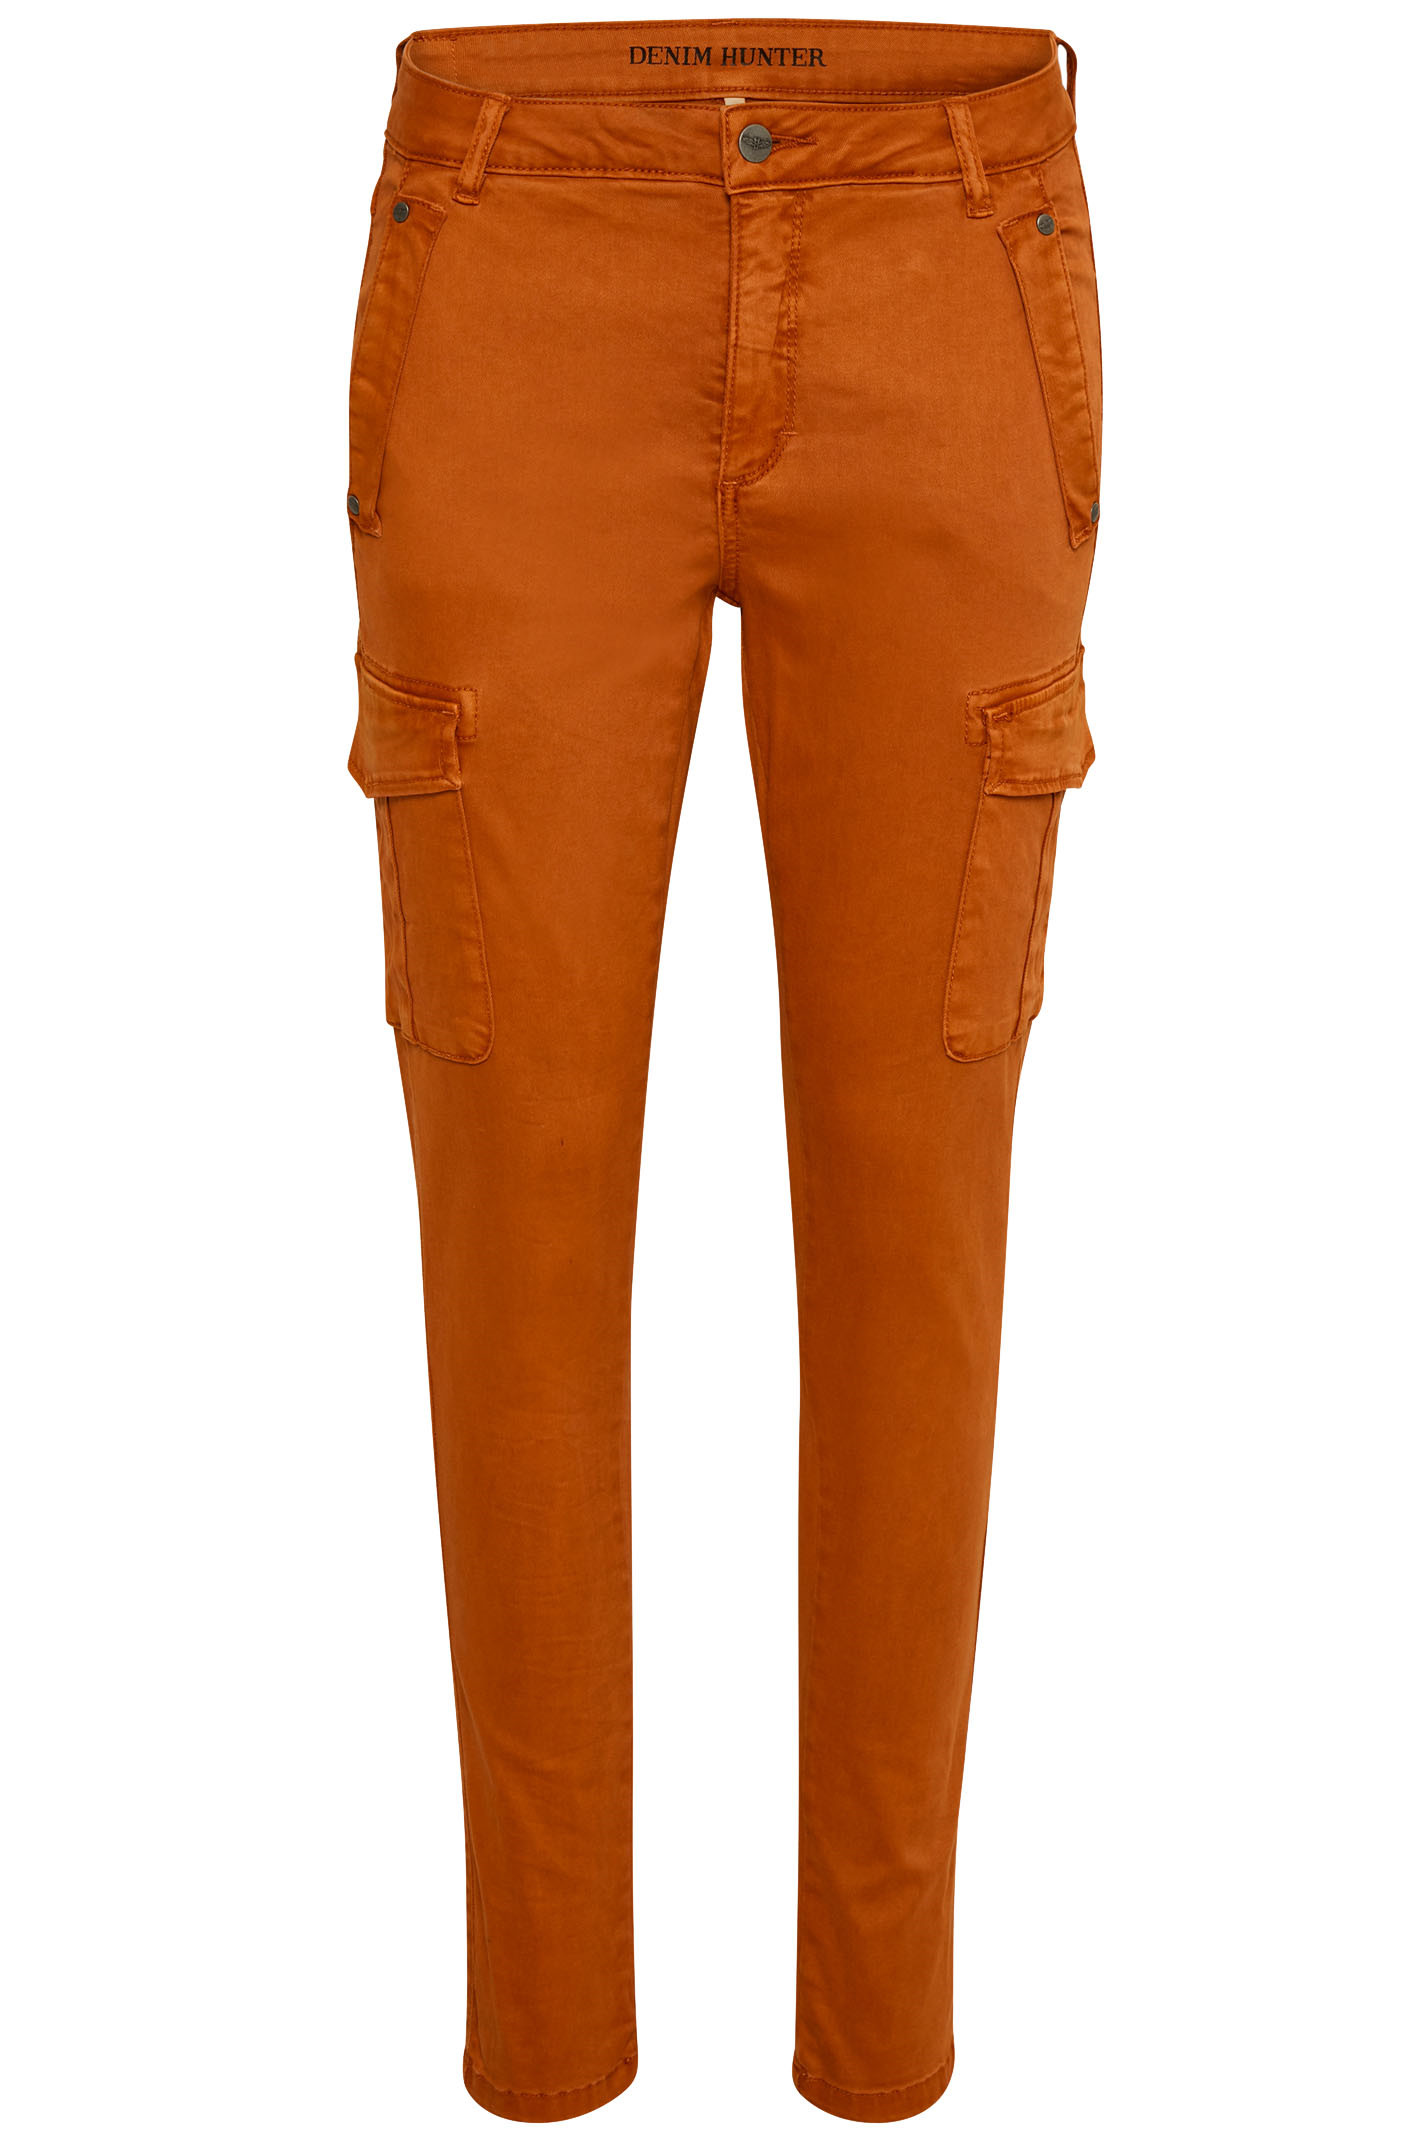 DENIM HUNTER JAMIE CARGO FREE 10701093 ORANGE